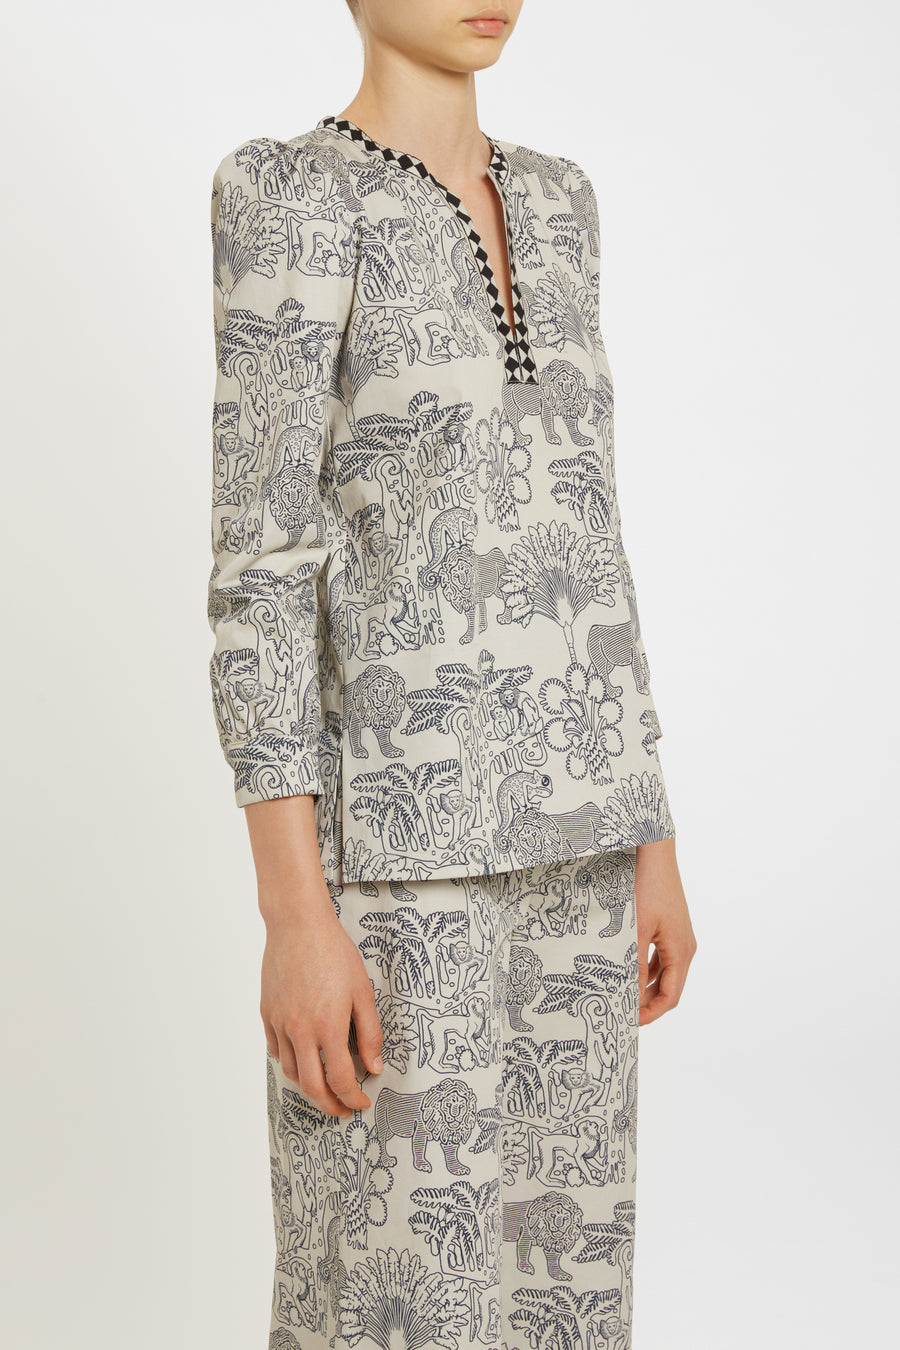 LE SIRENUSE Kate 2 Lion And Monkey Shirt Cotton Drill in Dark Blue